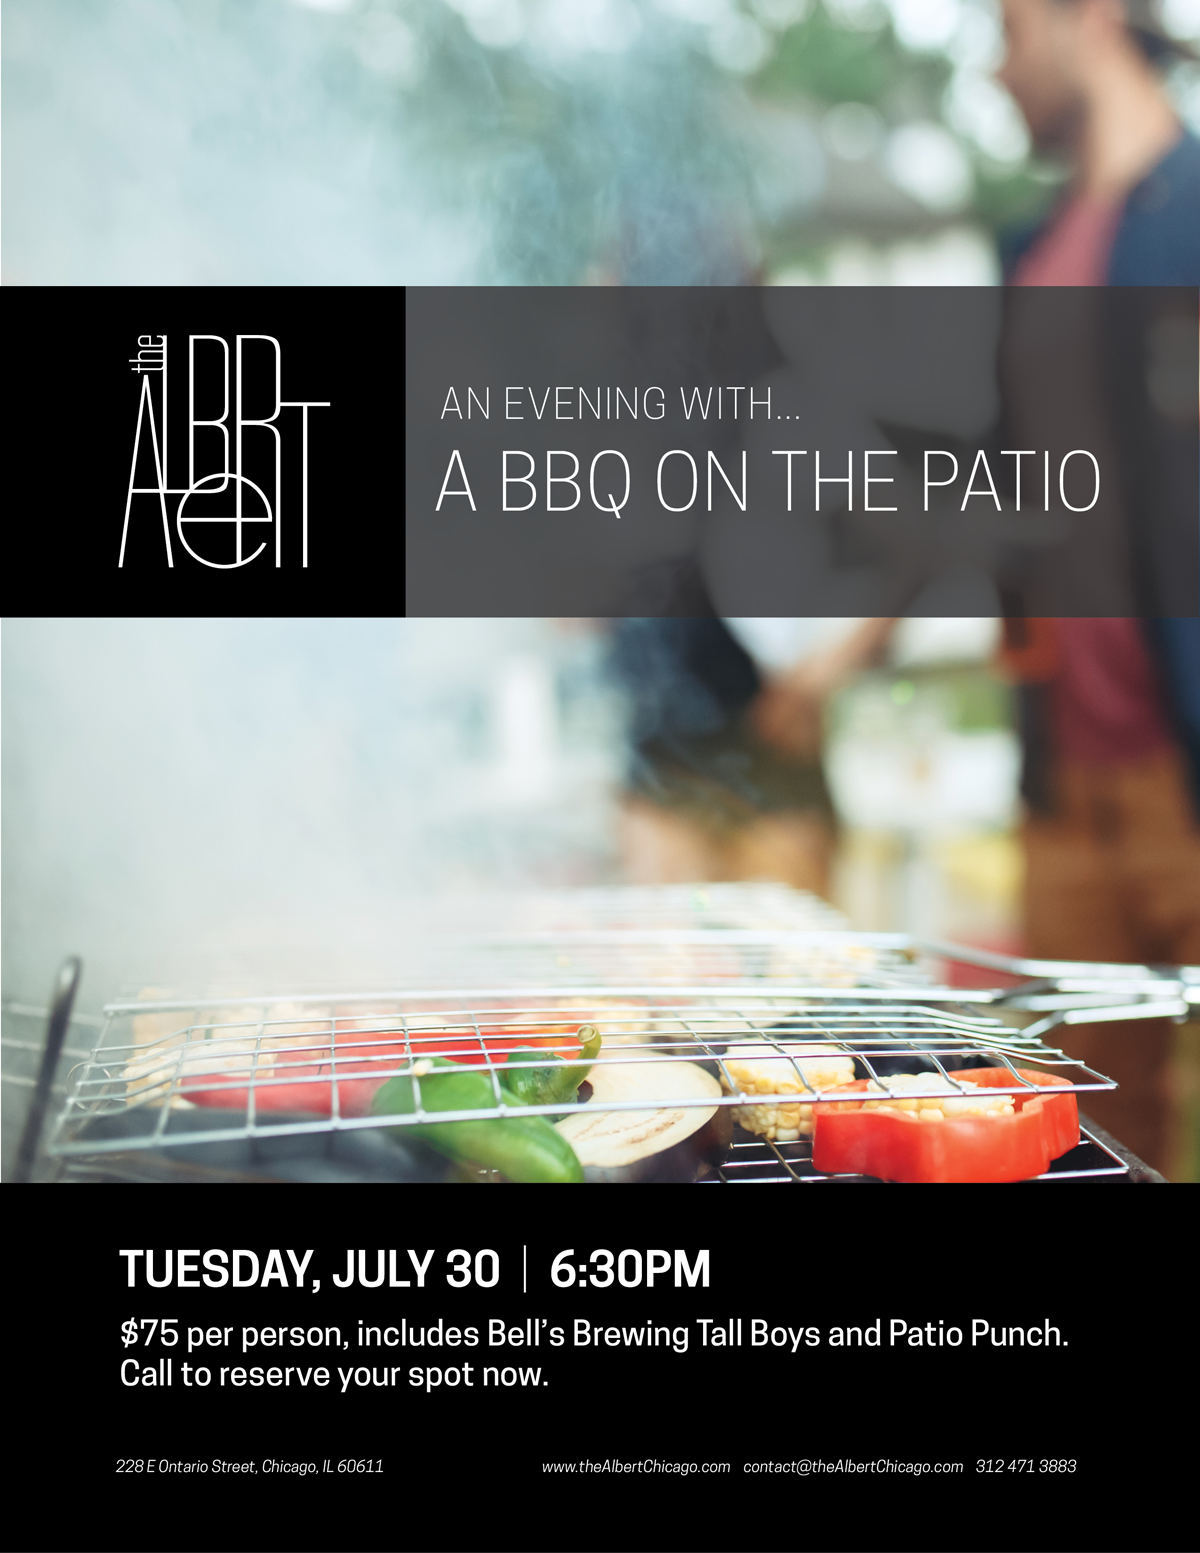 the Albert BBQ on the Patio